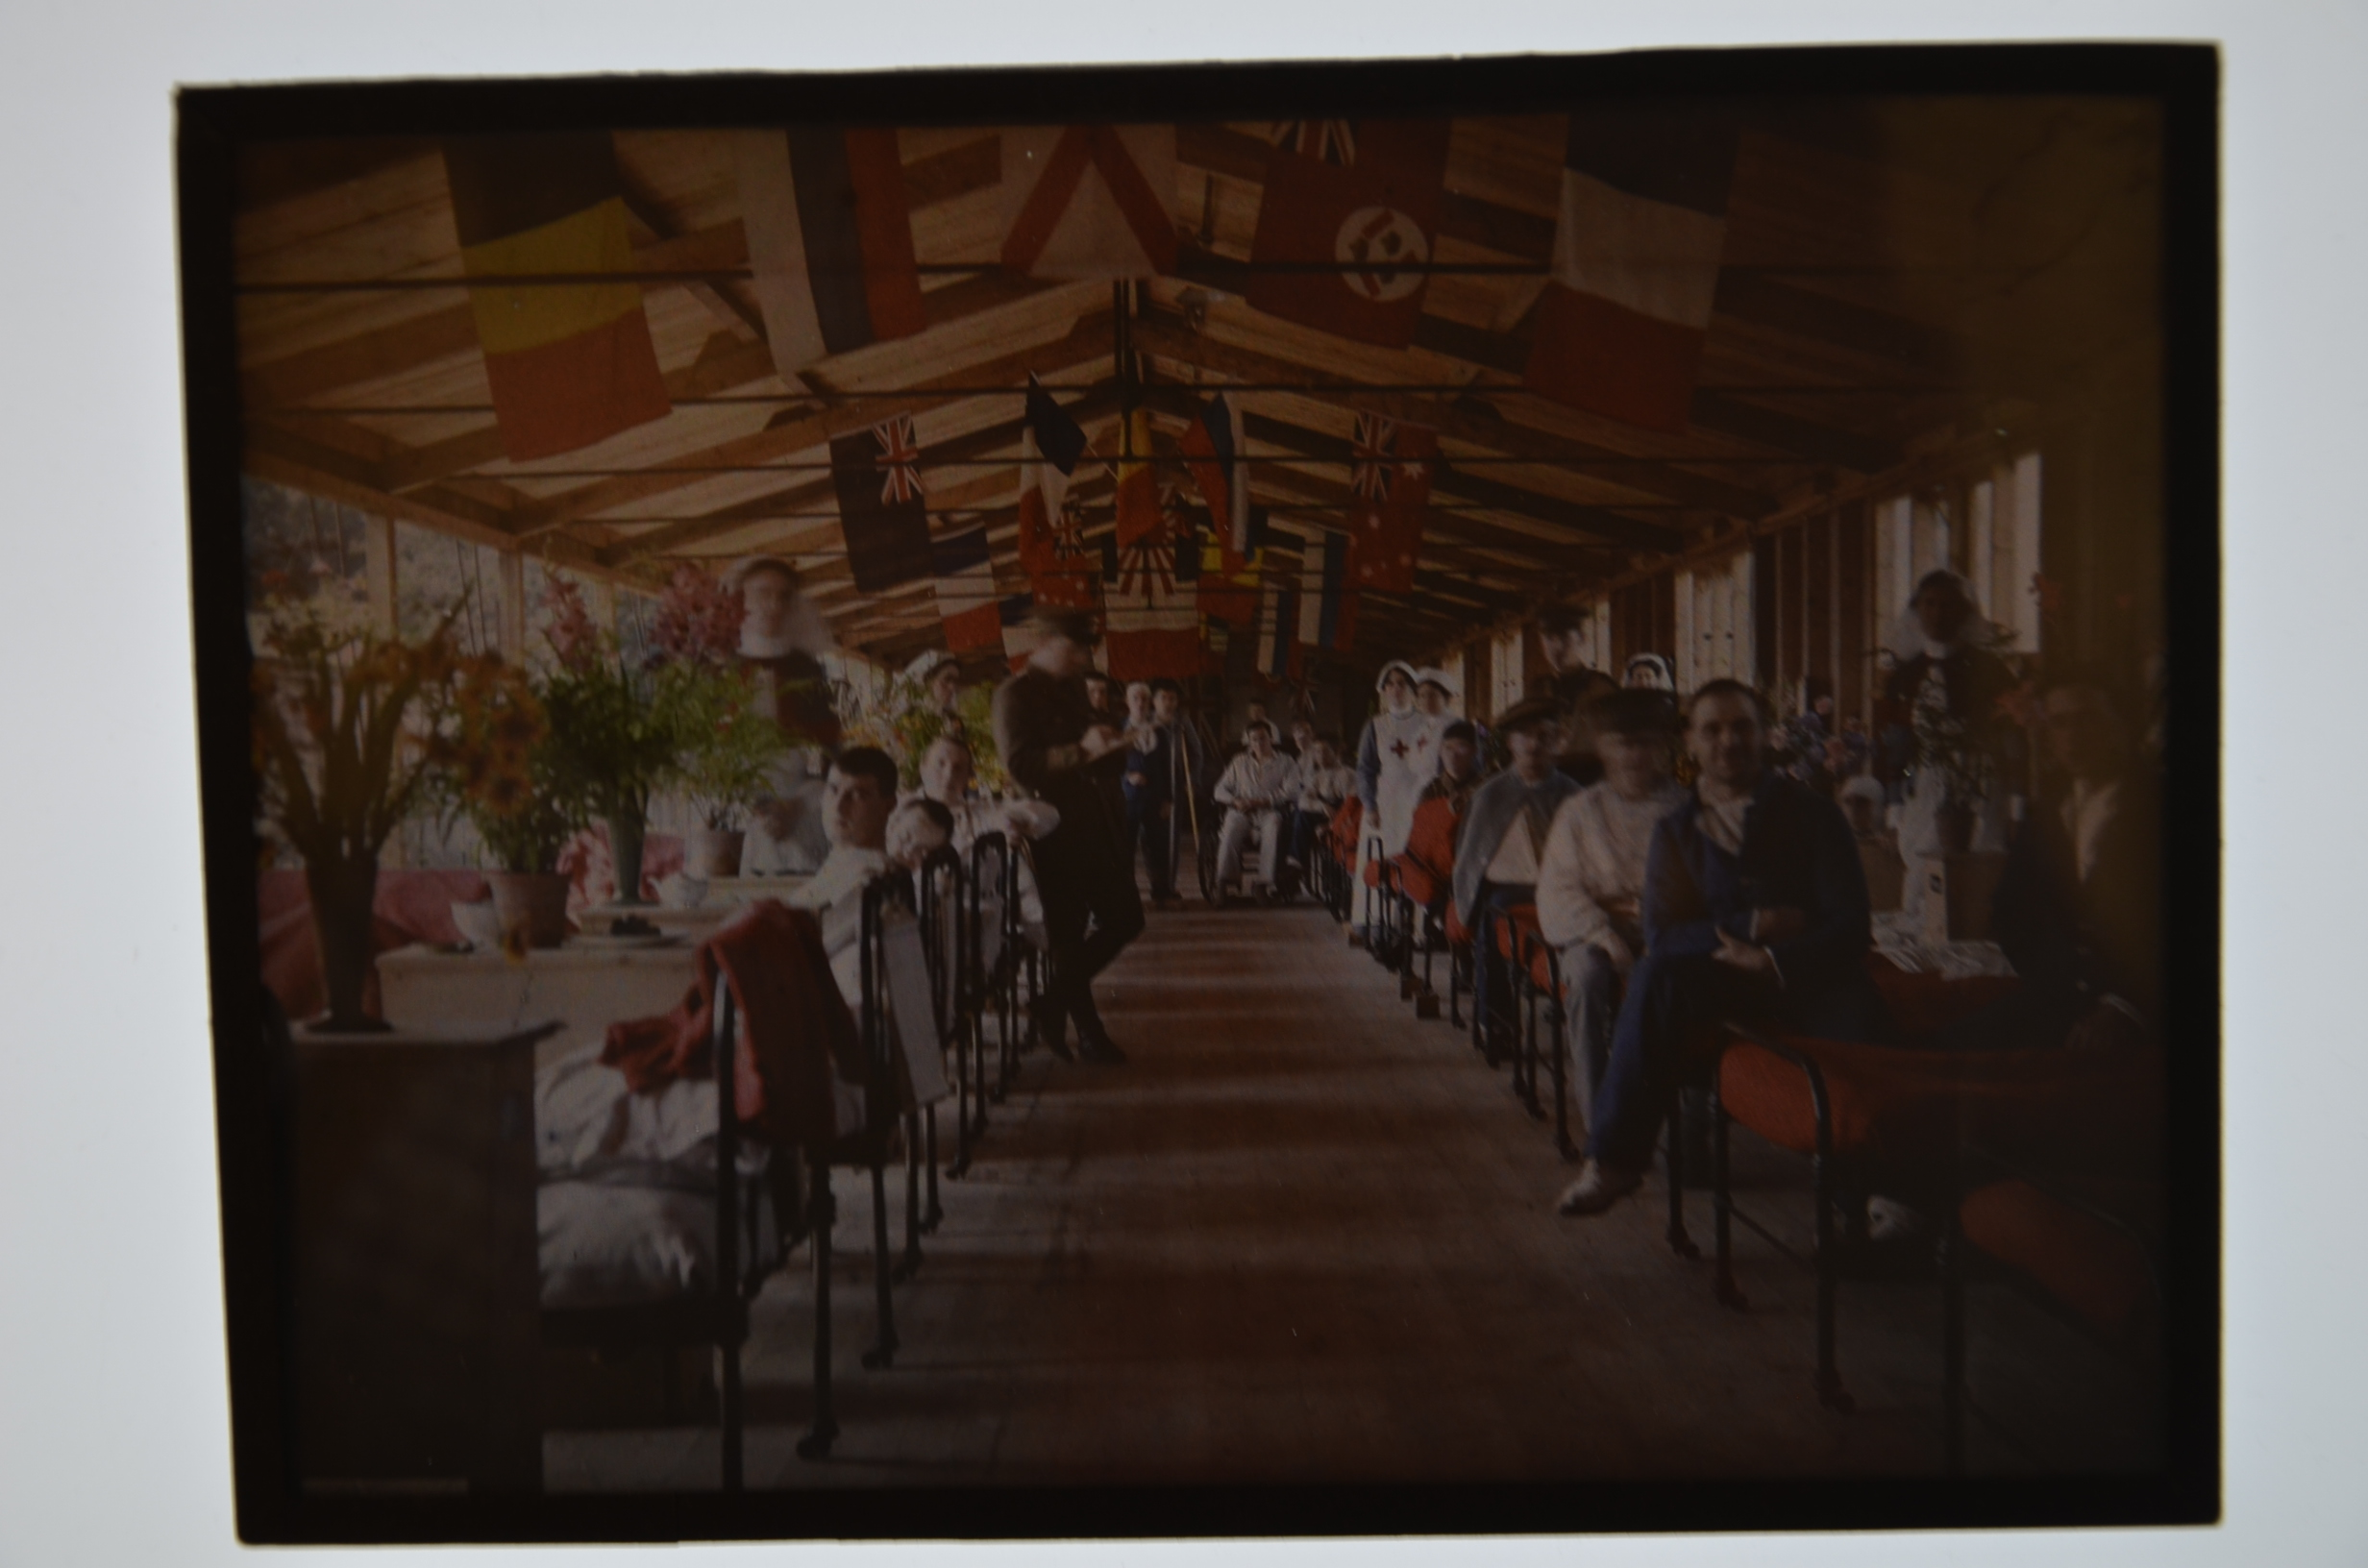 Lot 519 - Two half-plate Autochromes, of the First Eastern General Hospital on The Backs in Cambridge circa